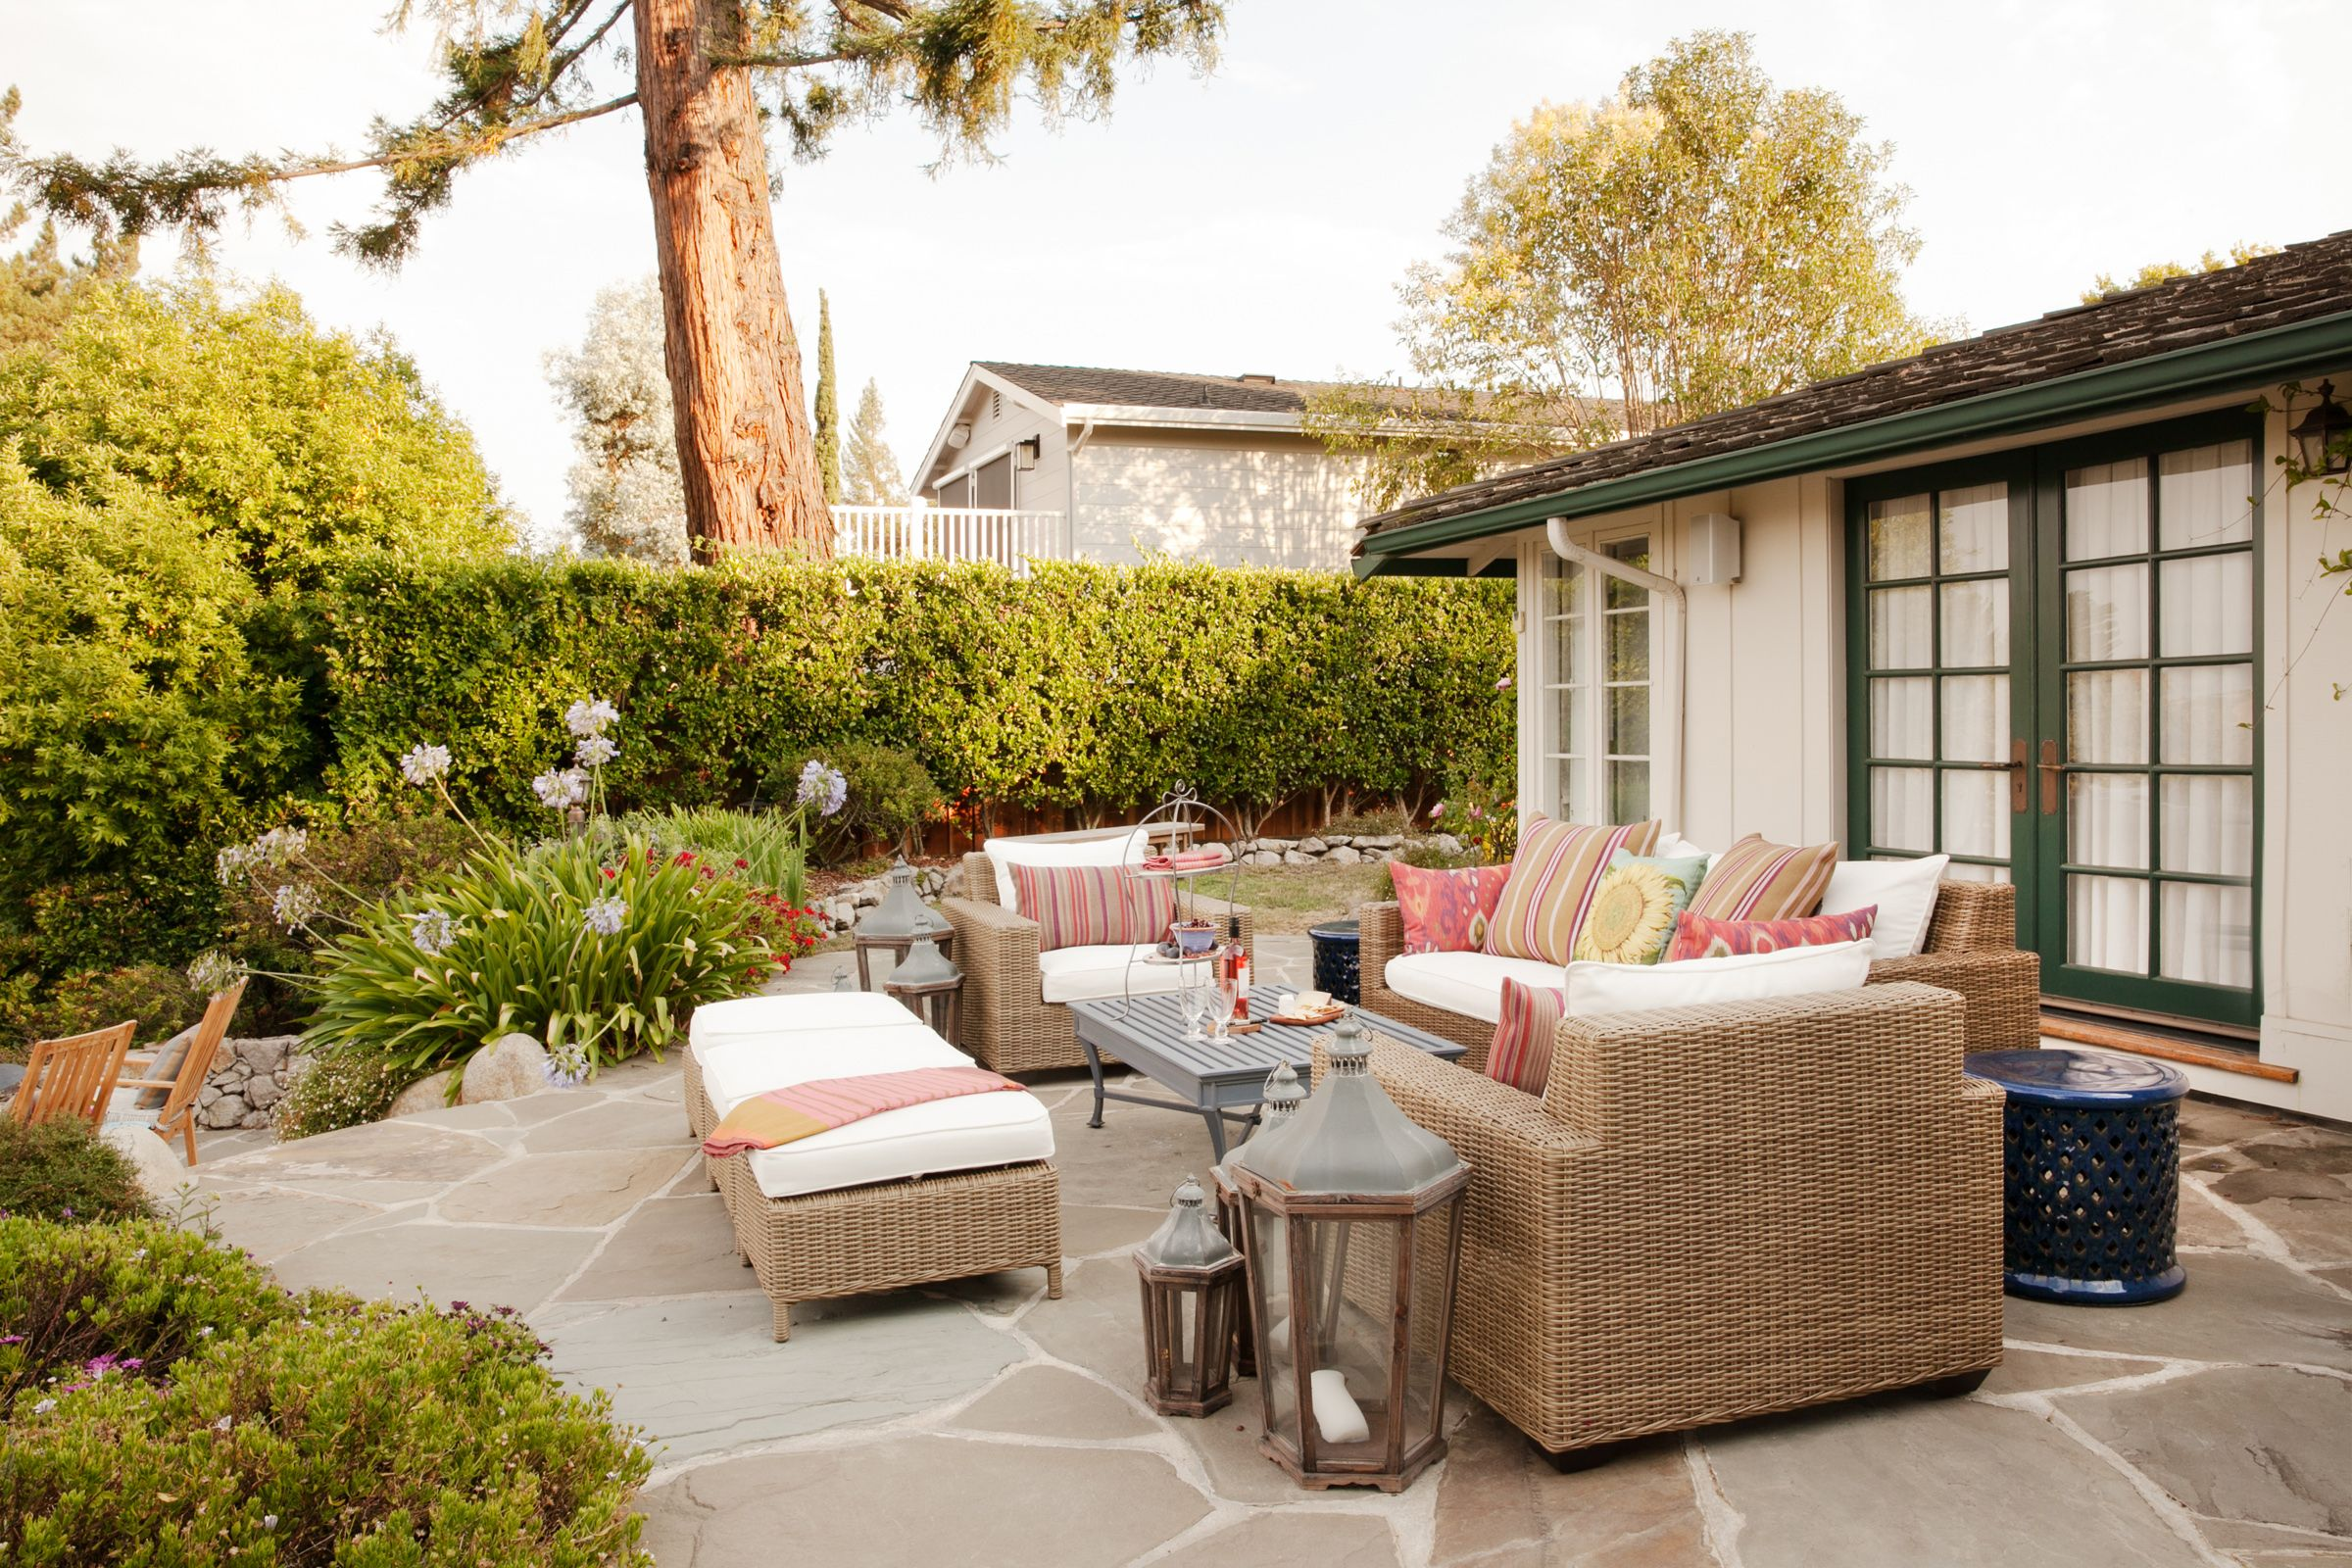 indoor outdoor living spaces mediterranean style scenic outdoor living designed for entertaining kari mcintosh creates multifunctional outdoor living space inspired by the french countryside photo backyard ideas